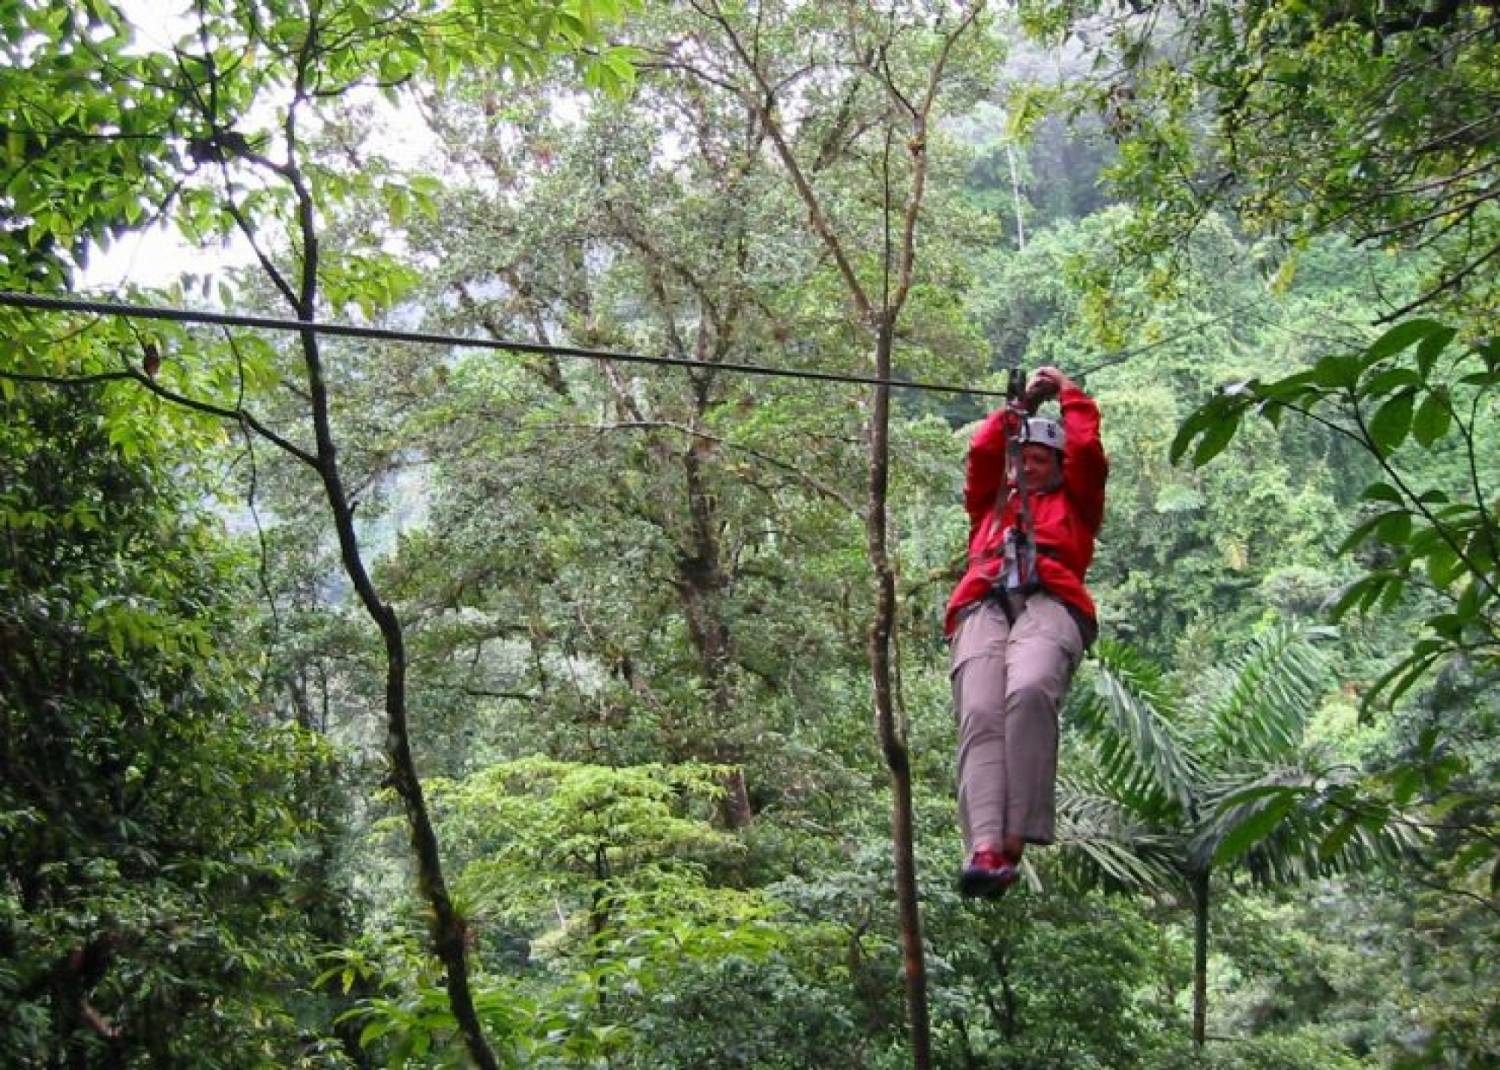 ... Congo Trail Canopy Tour Original Canopy Zip Line Tour ... & Original Canopy Zip Line Tour - Congo Trail Canopy Tour Your family ...